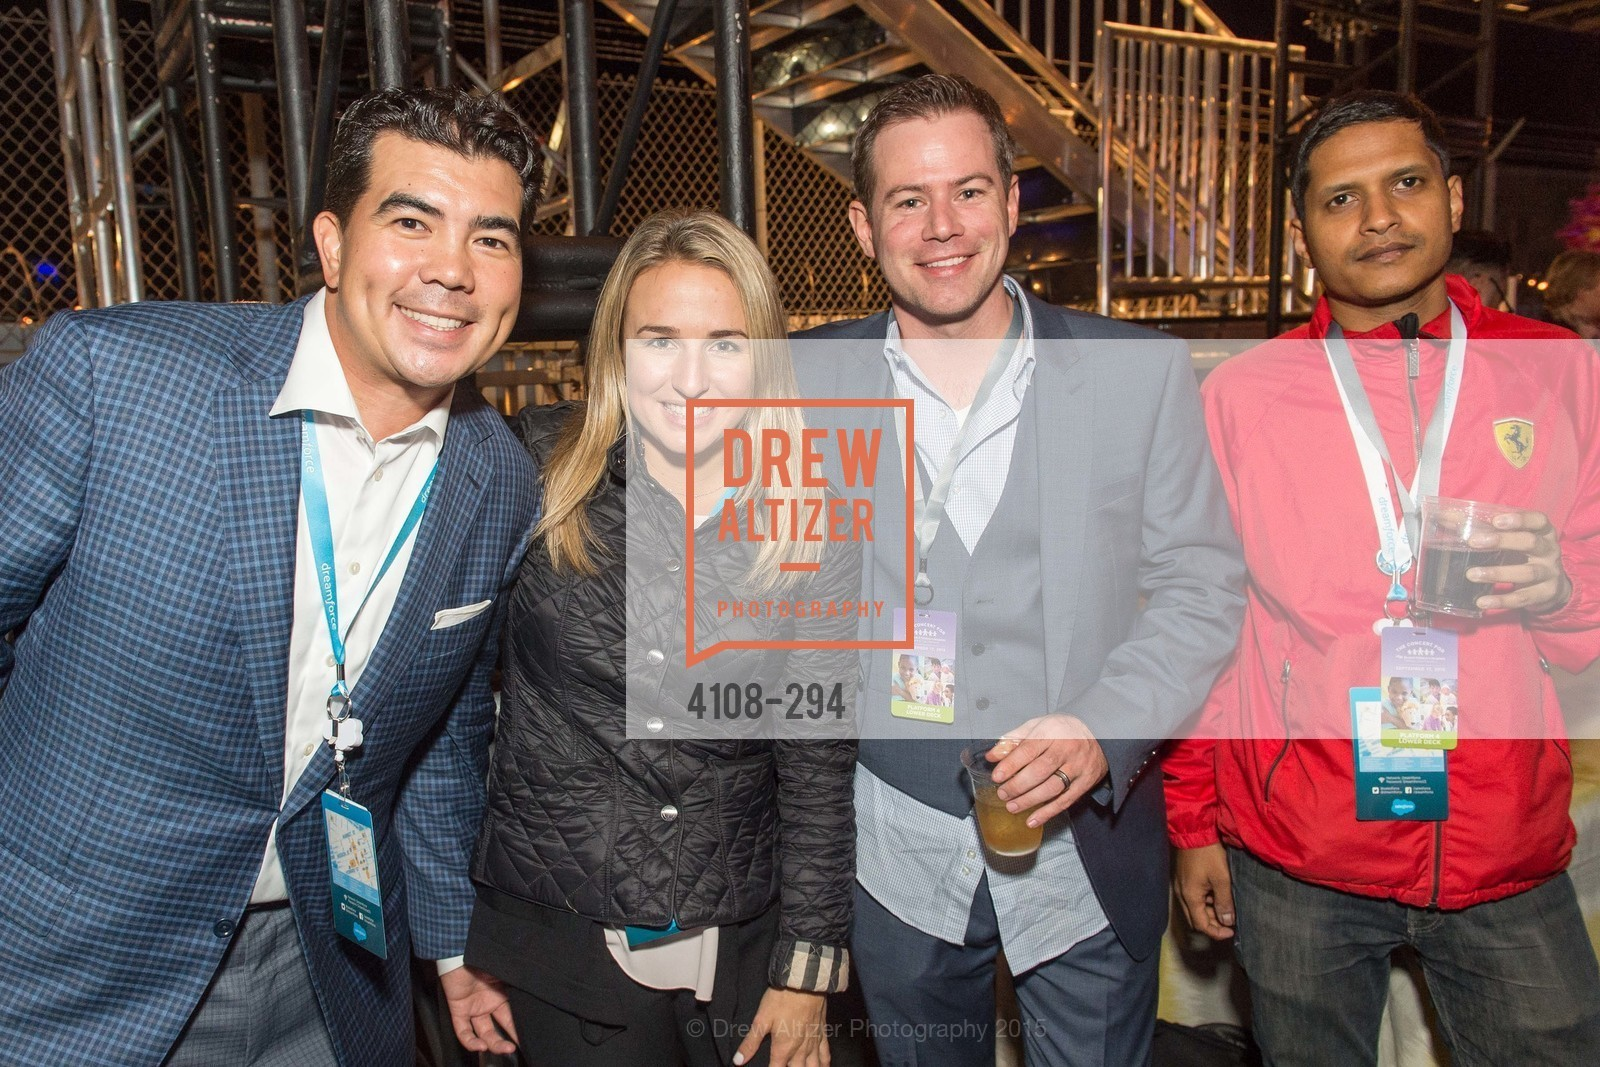 Dan Darcy, Allie Befalo, Mark Lewin, The Concert For UCSF Benioff Children's Hospital, Pier 70, September 17th, 2015,Drew Altizer, Drew Altizer Photography, full-service agency, private events, San Francisco photographer, photographer california